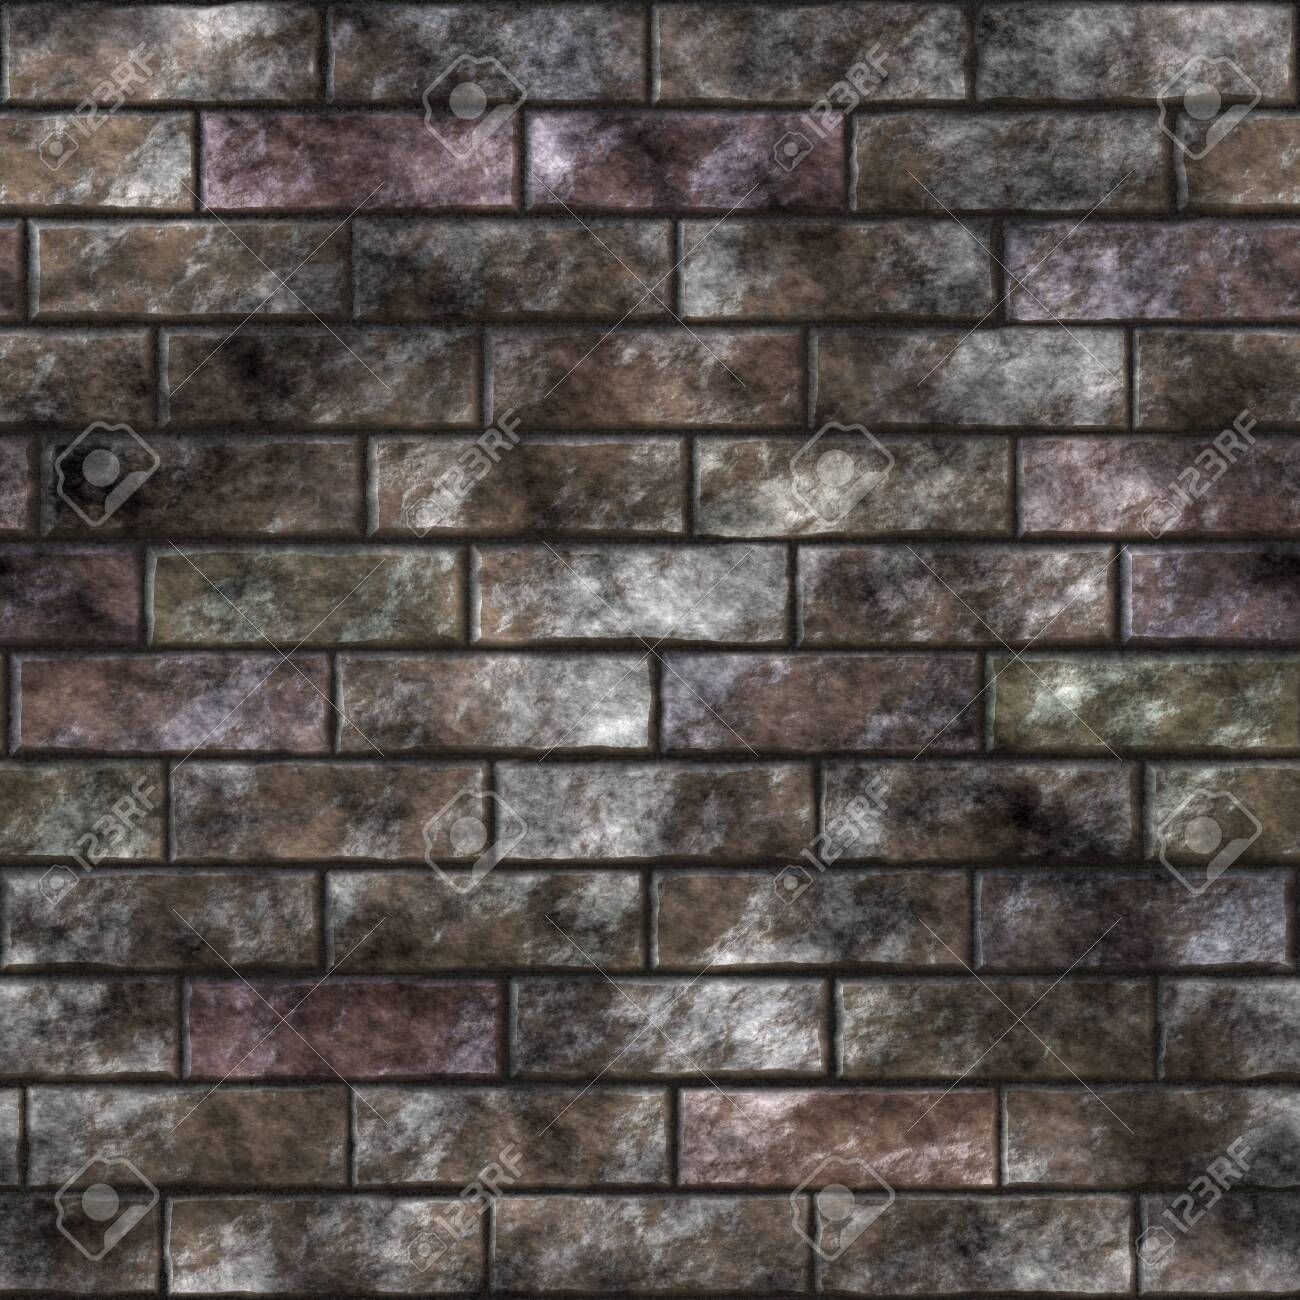 Old Brick Wall Seamless Texture Or Background Illustration Aff Seamless Wall Brick Illustration Backgr Old Brick Wall Seamless Textures Old Bricks